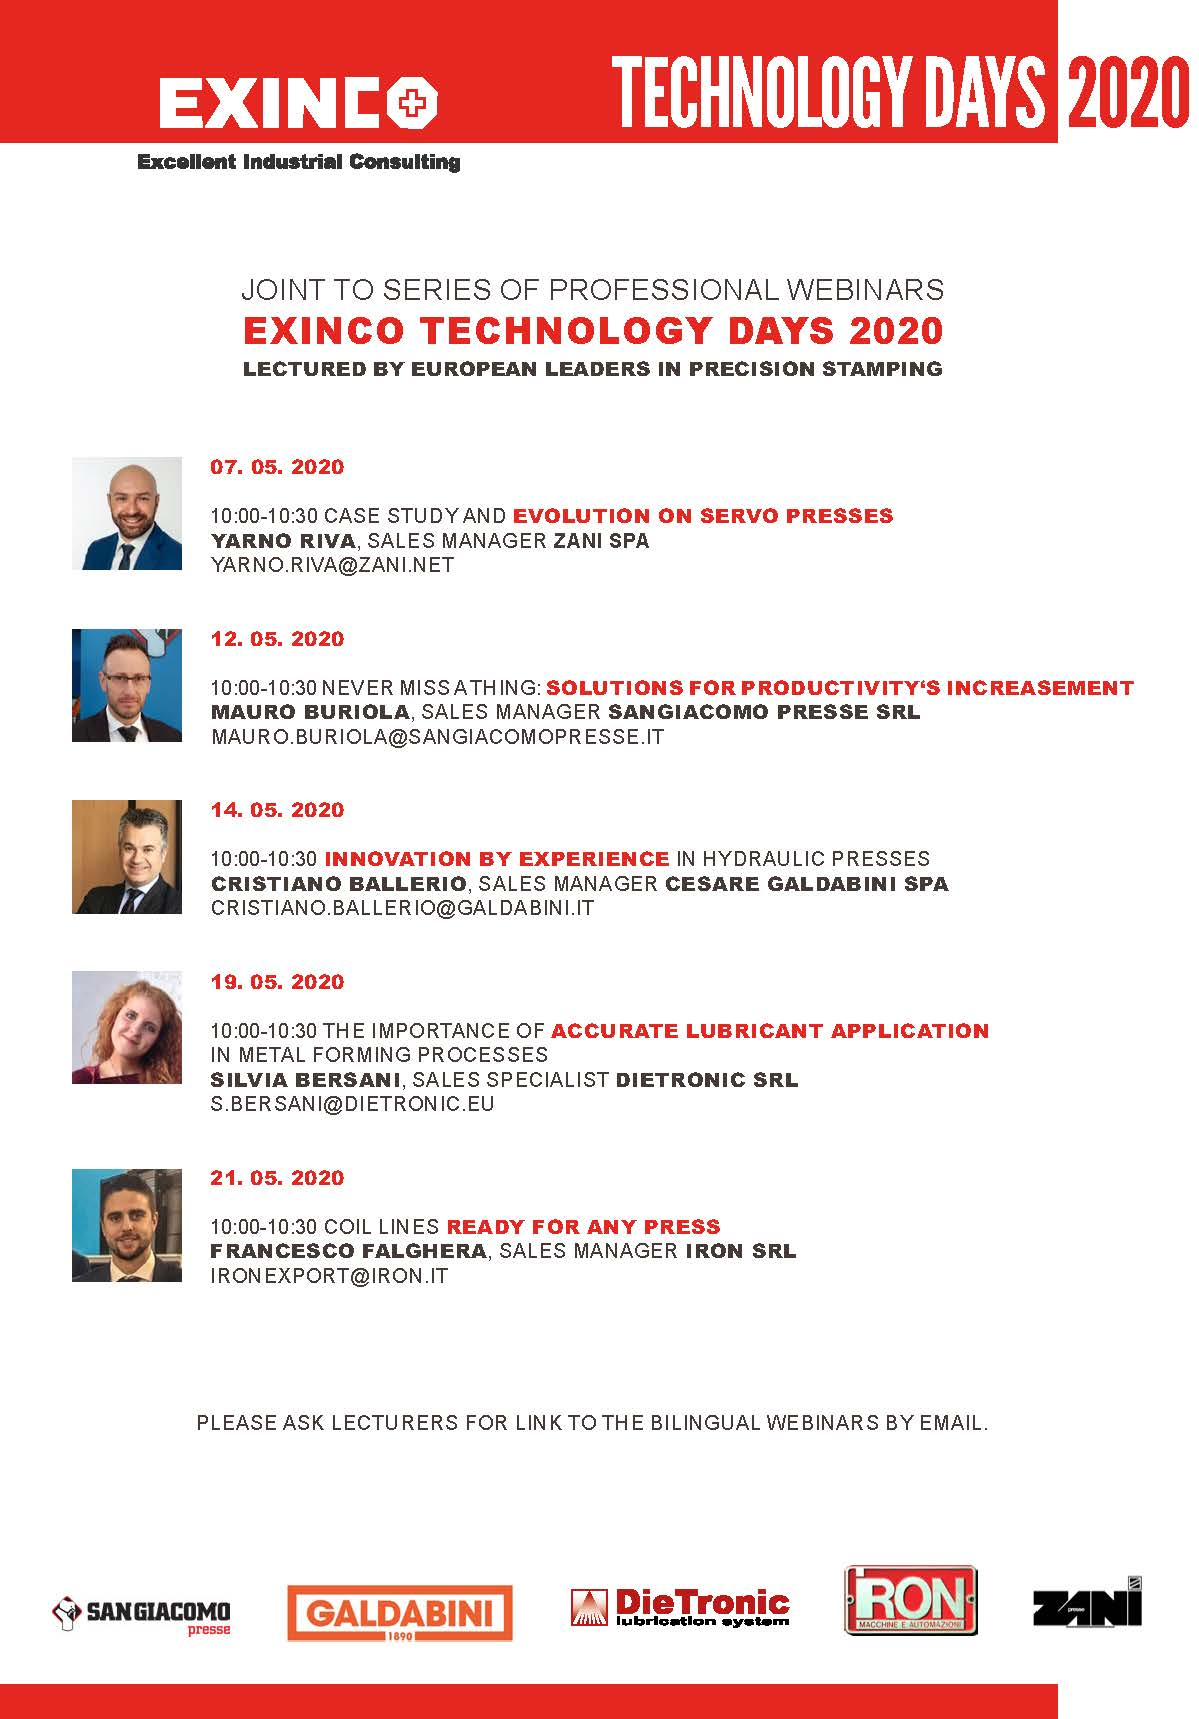 Technology_days_2020_webinars (1)